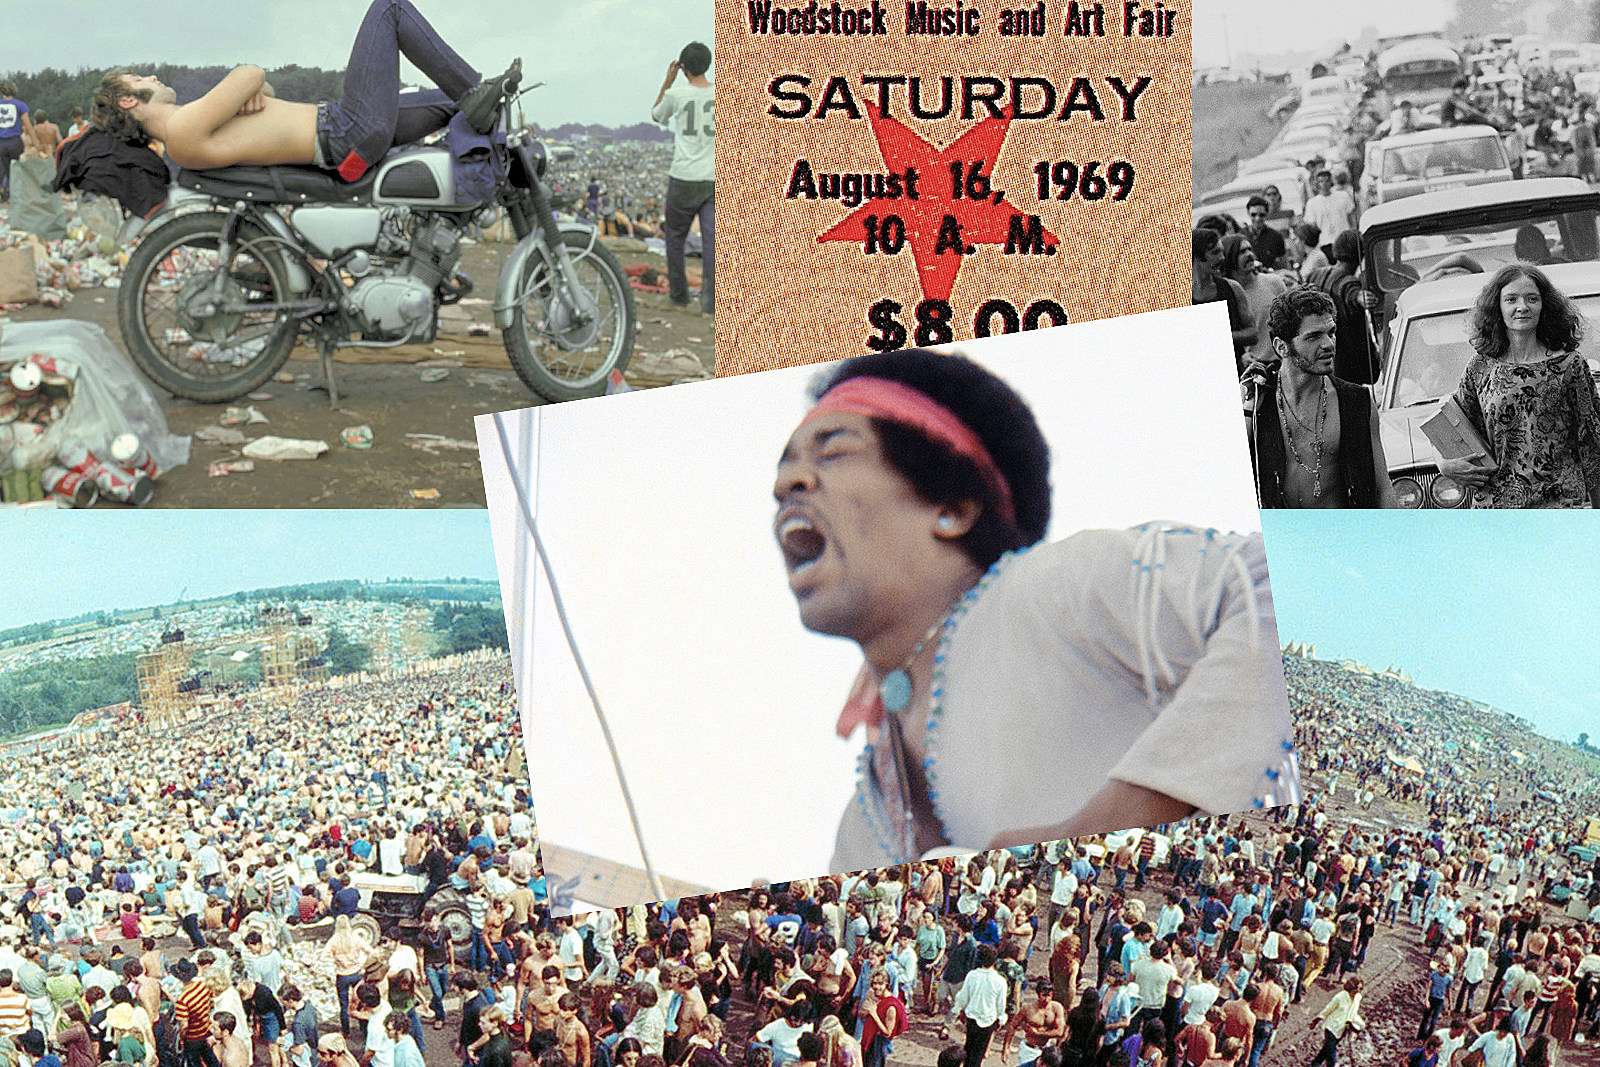 25 Years Ago: Woodstock '94 Offers Music, Moshing, Mud and Dylan